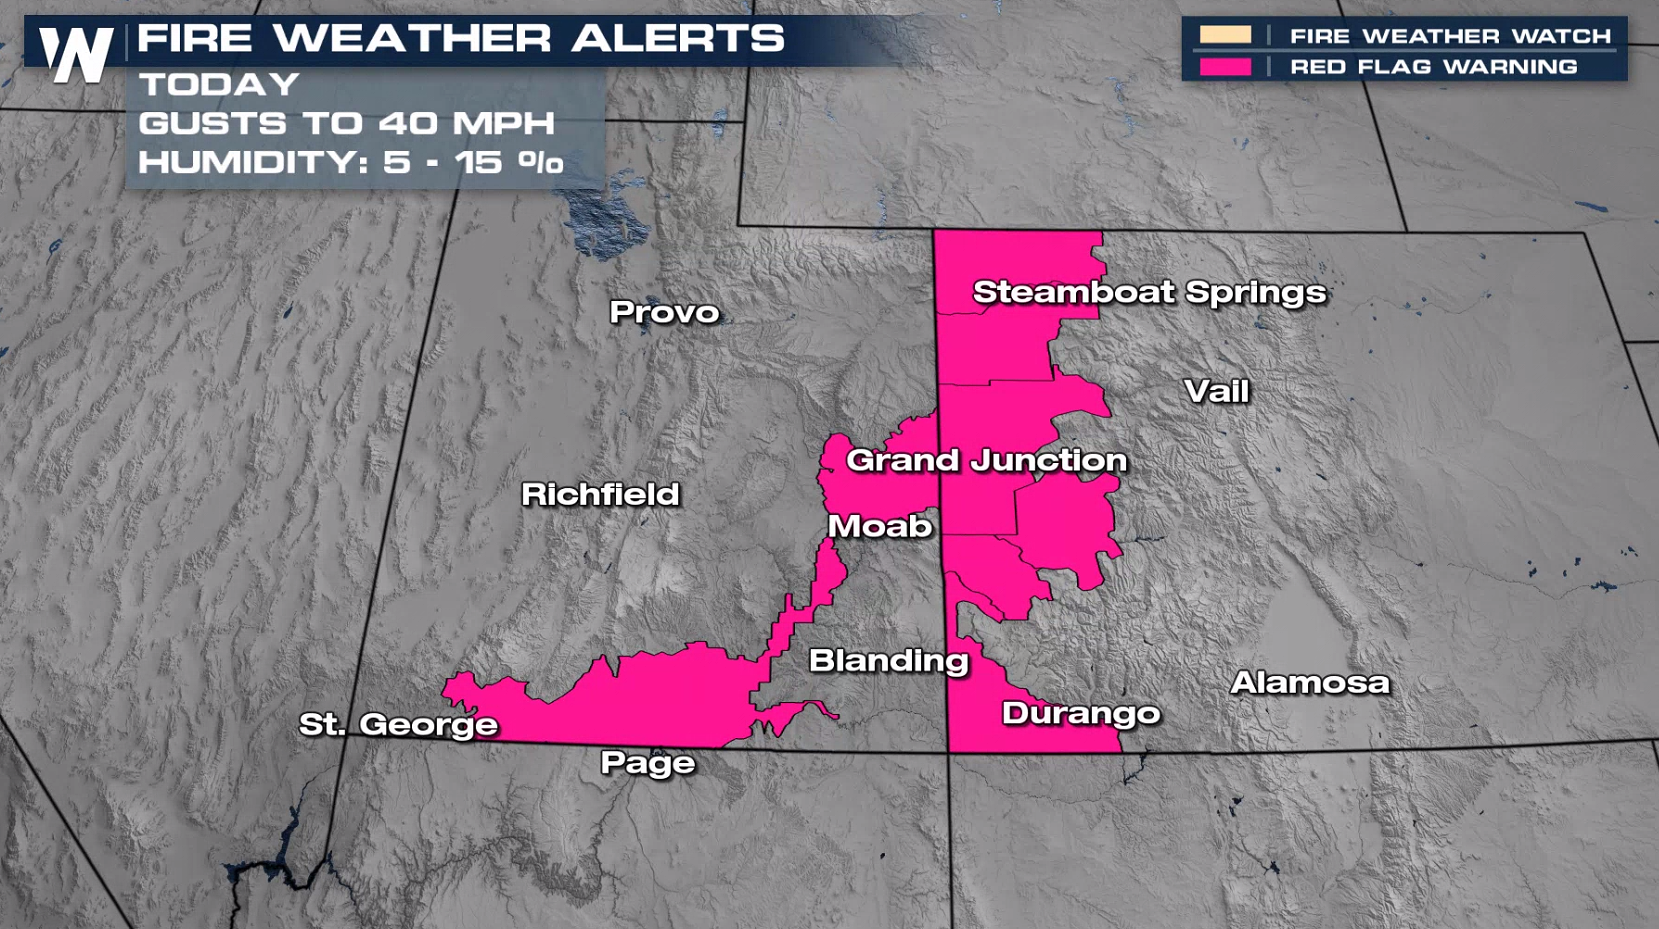 Fire Weather Conditions in the Southwest